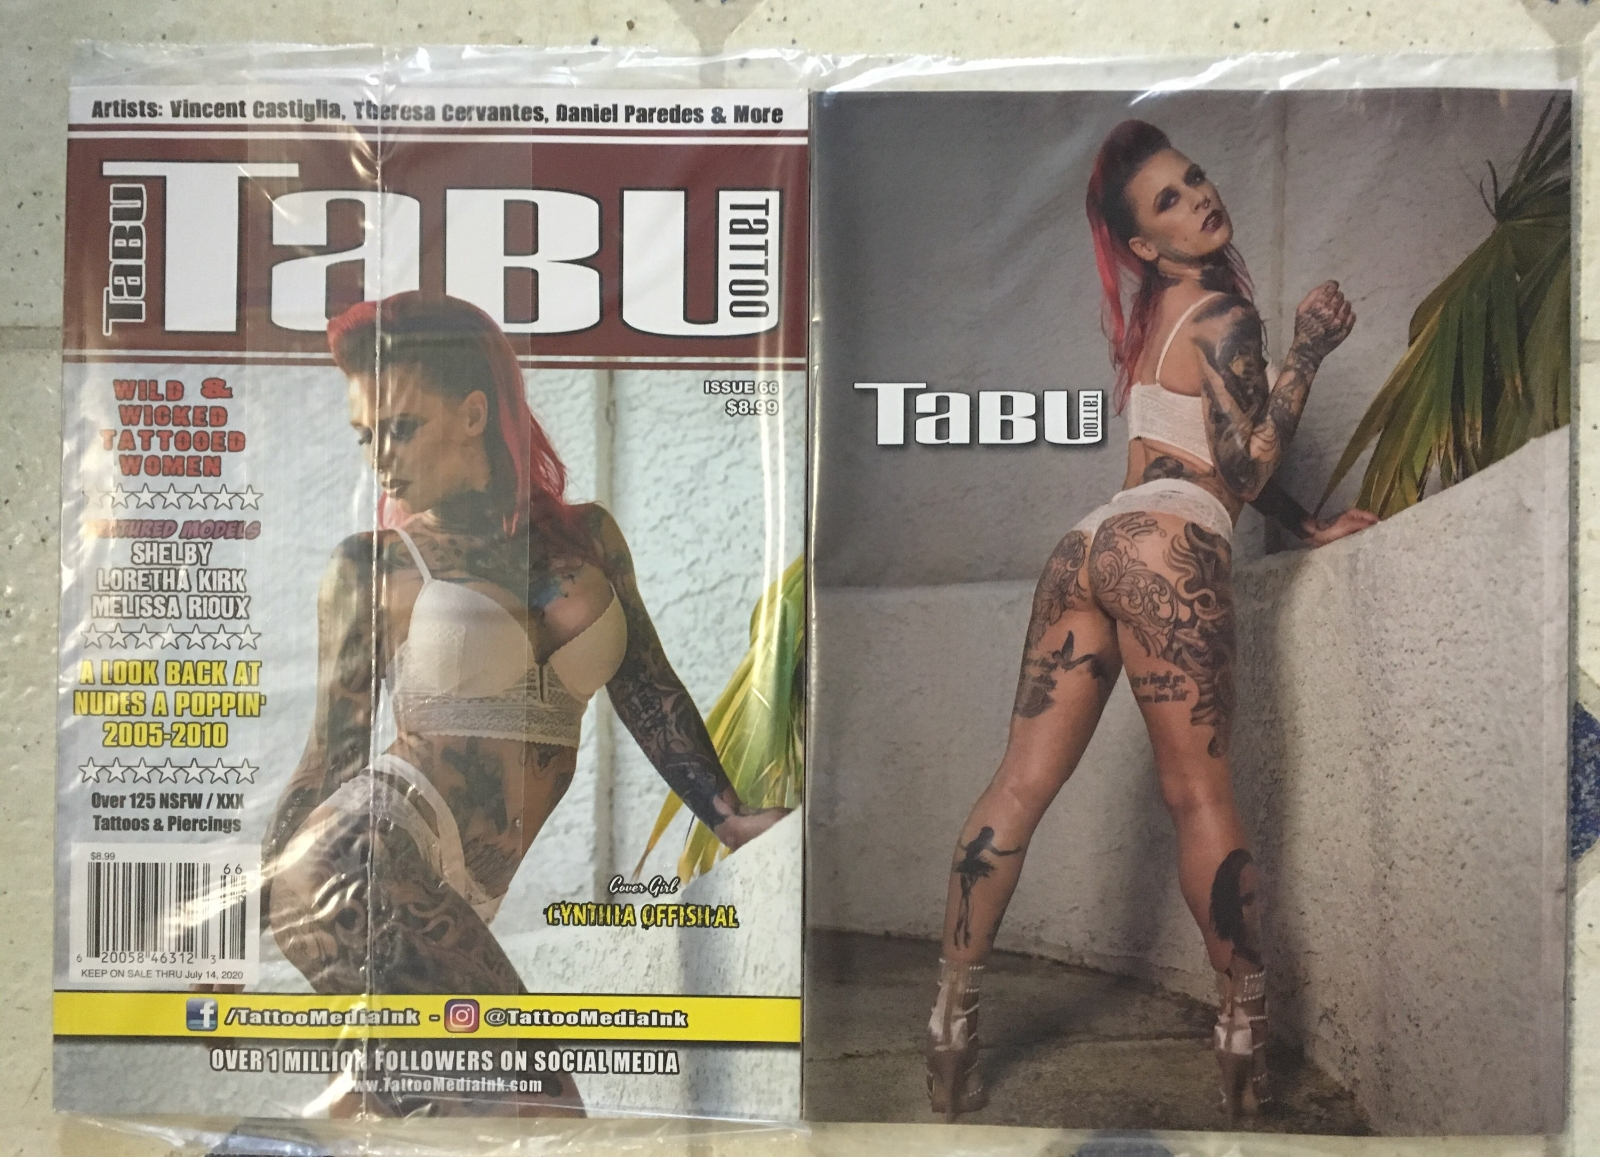 Tabu Tattoo Issue 66 Sexy Cynthia Offishal A Look Back At 2005-2010 Shelby  Women